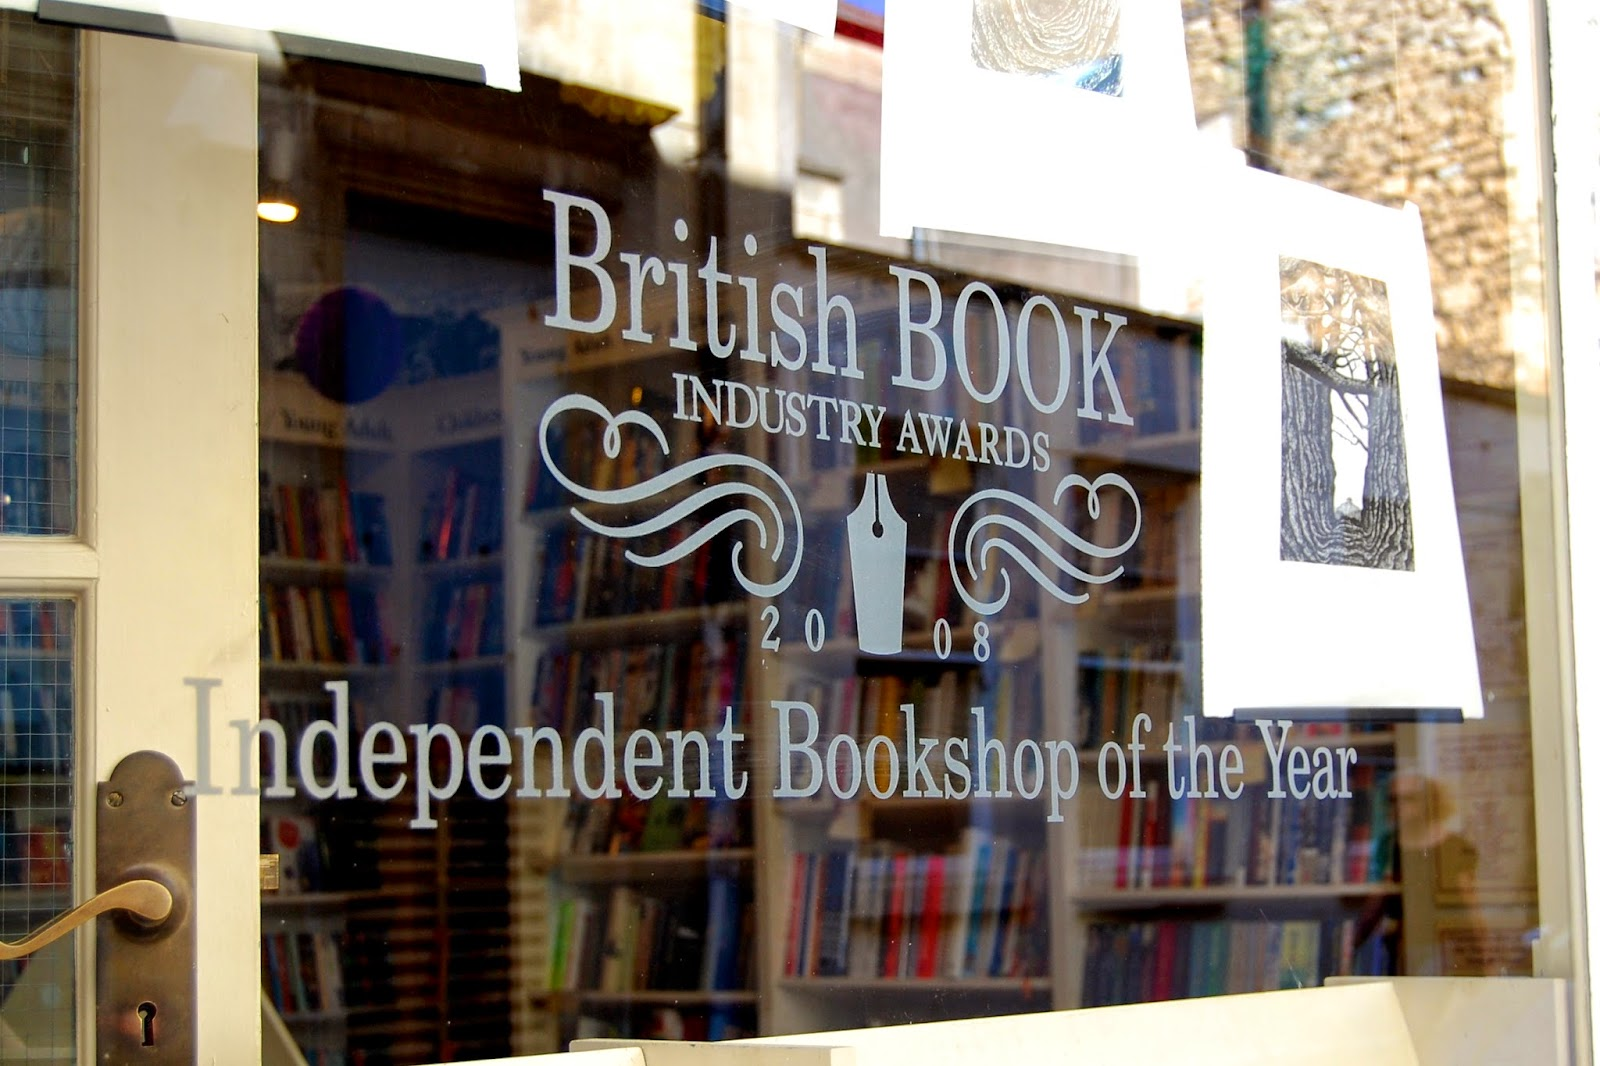 Award-winning bookshop